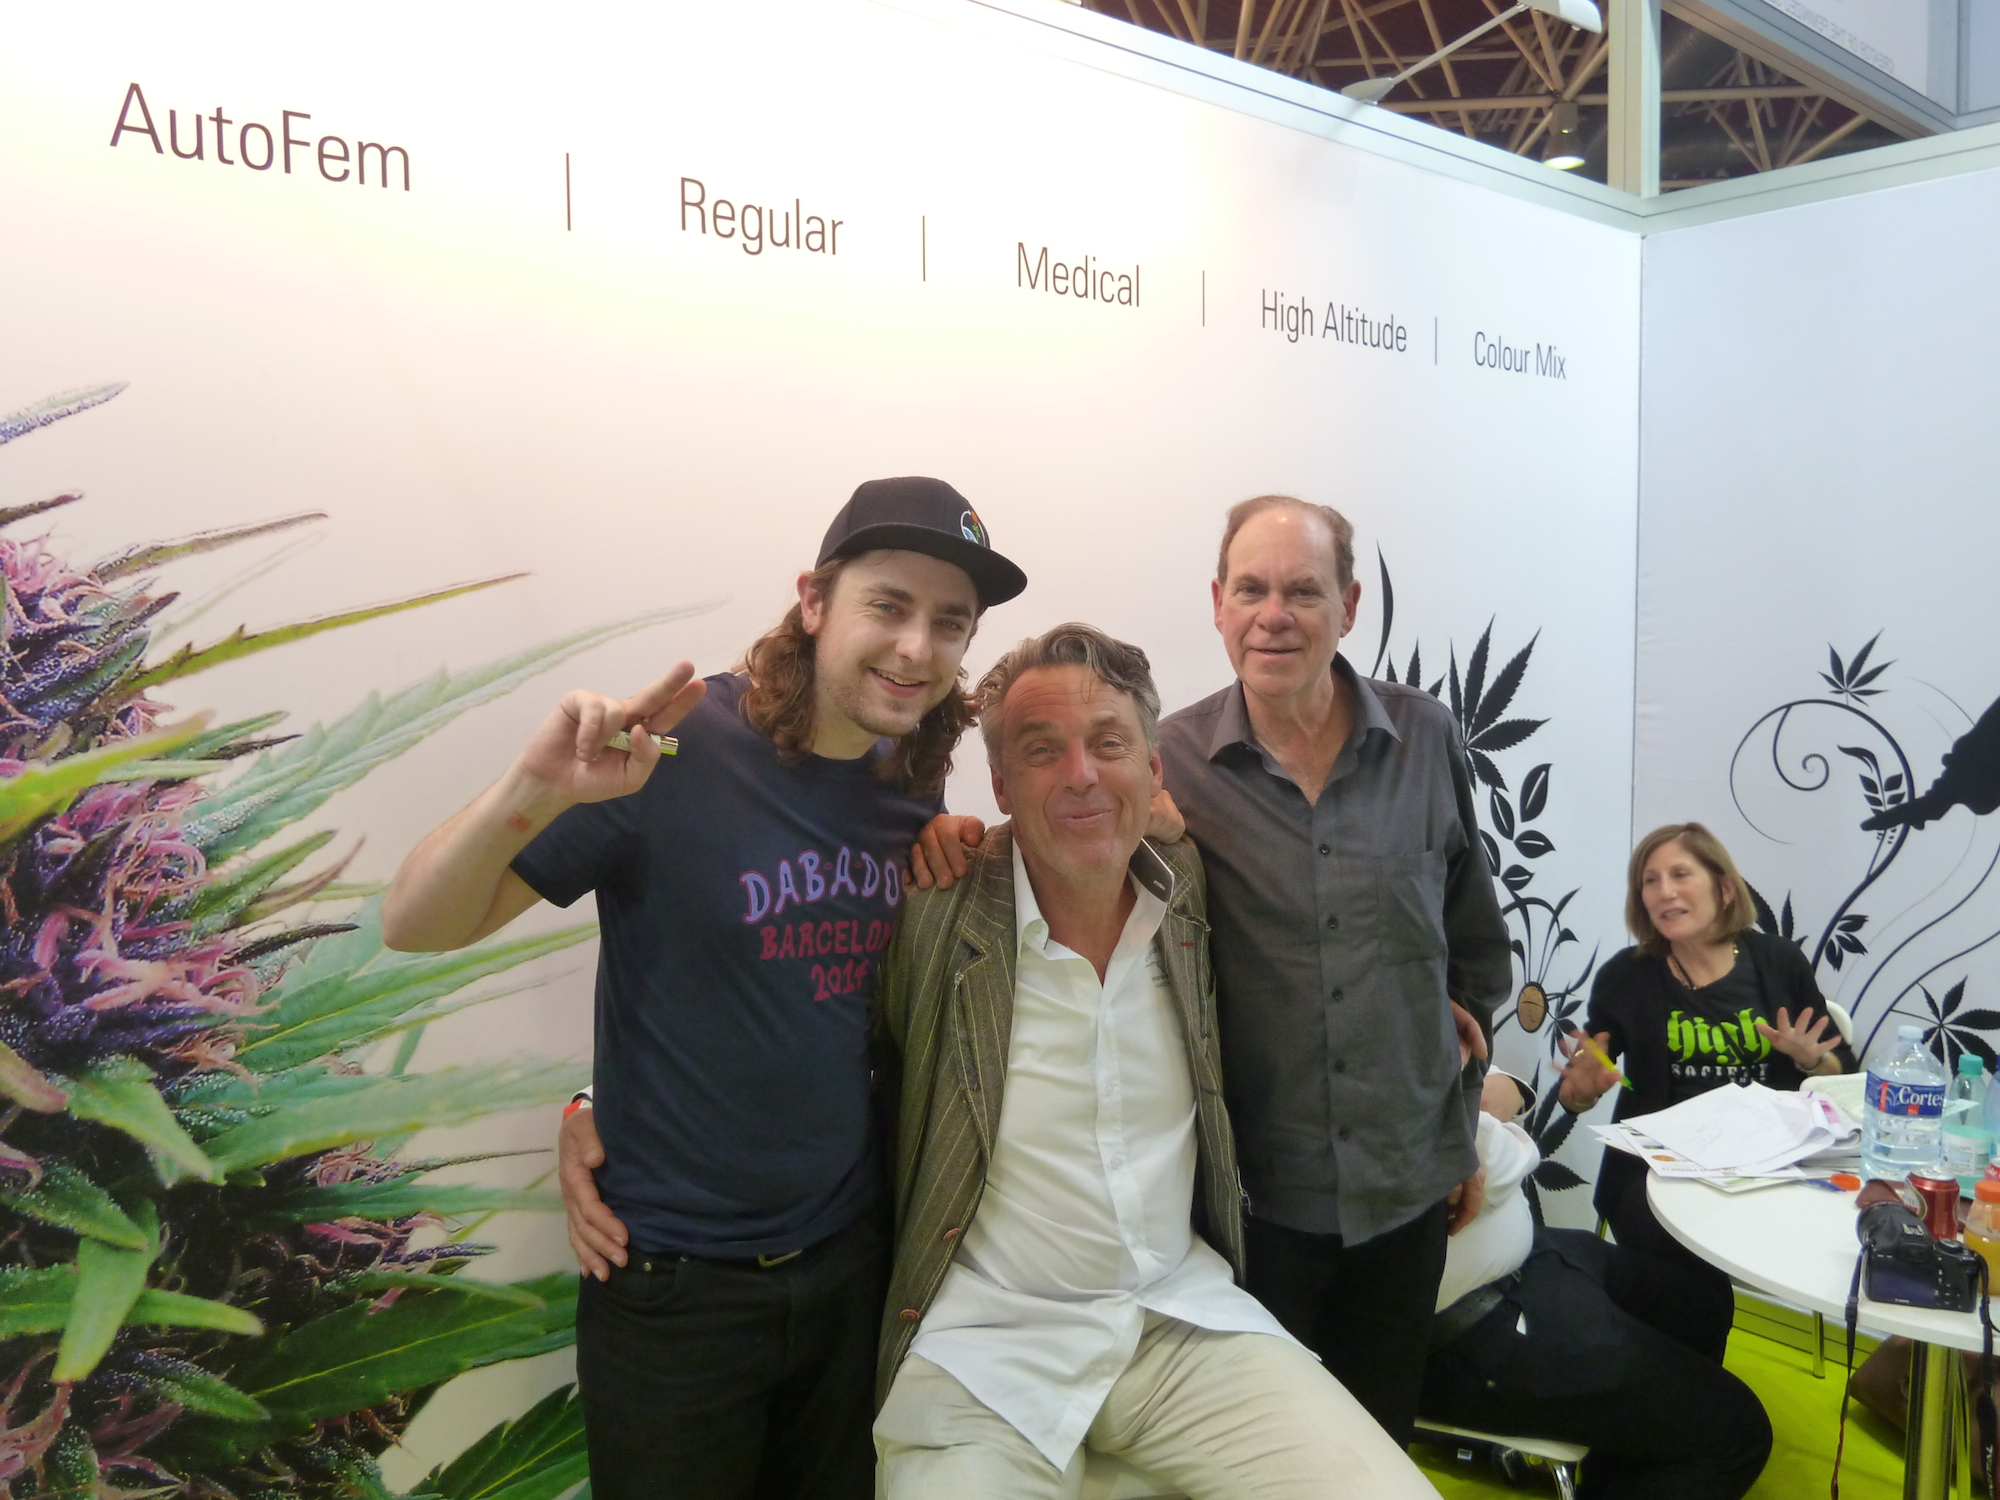 clark french, henk and ed rosenthal